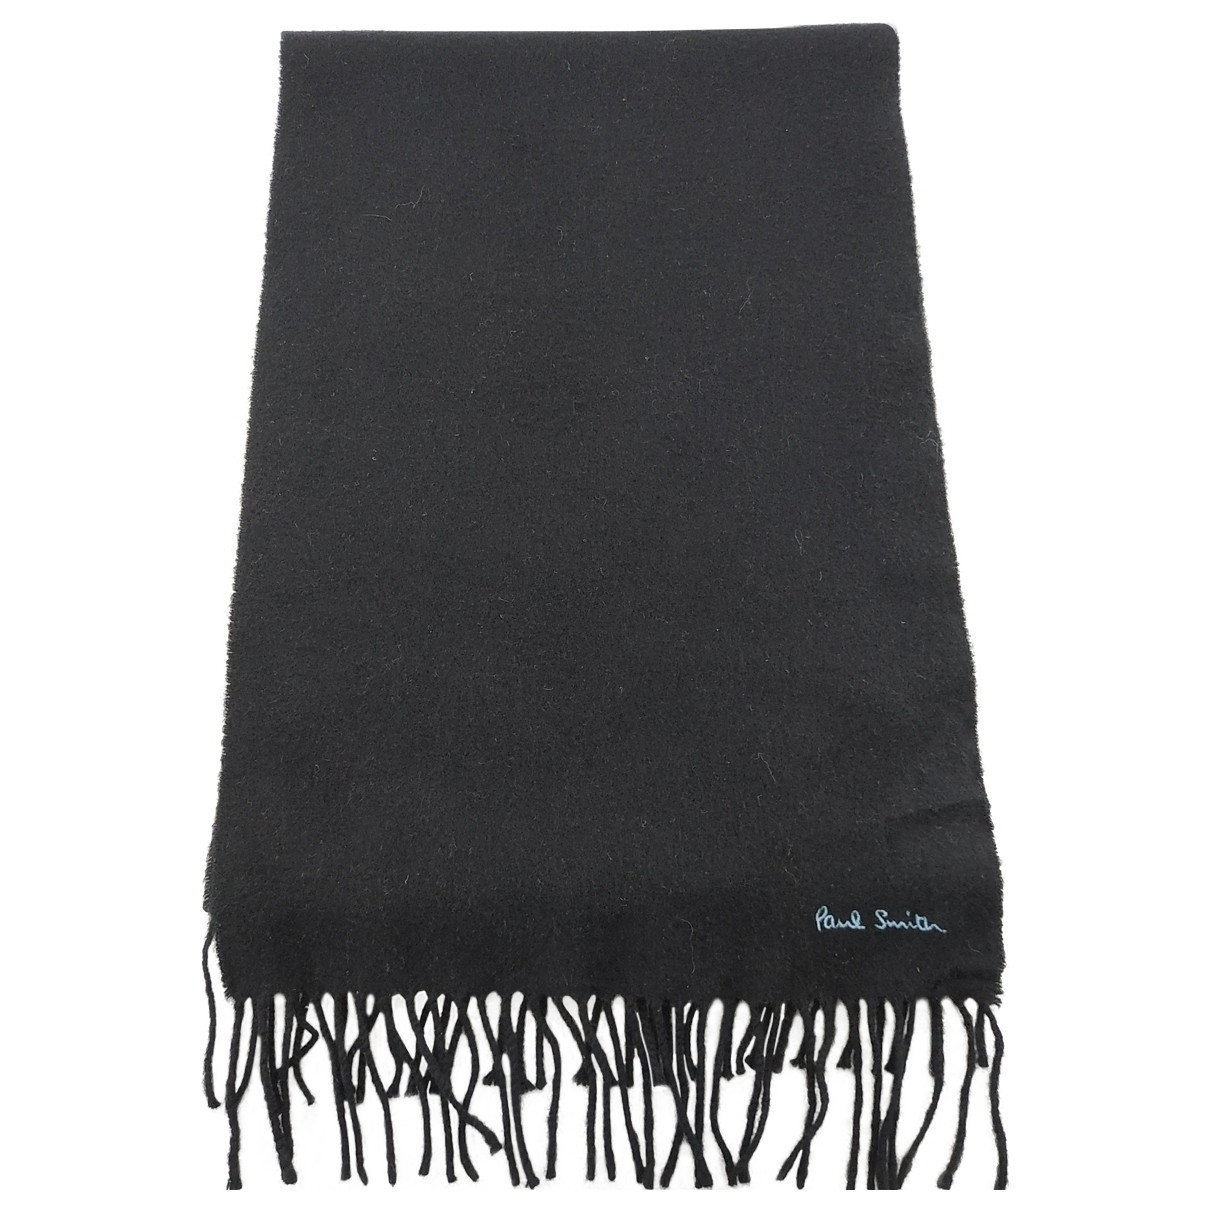 Paul Smith \N Black Cashmere scarf for Women \N